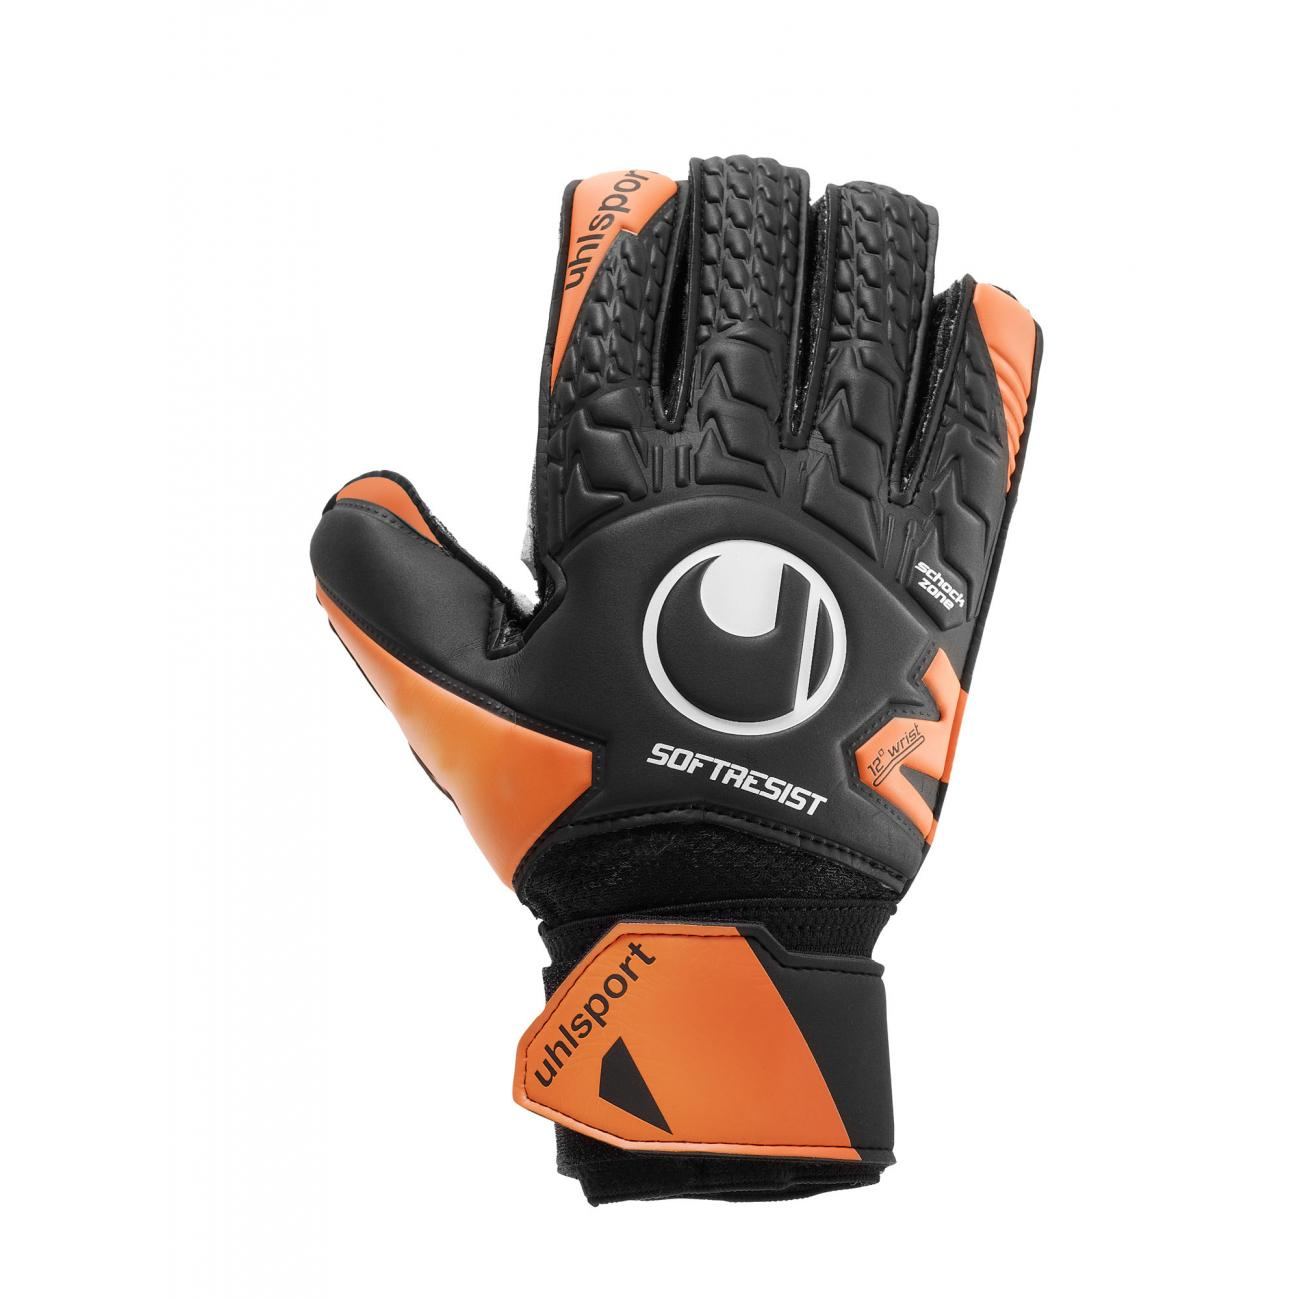 Uhlsport Soft Resist Flex Frame